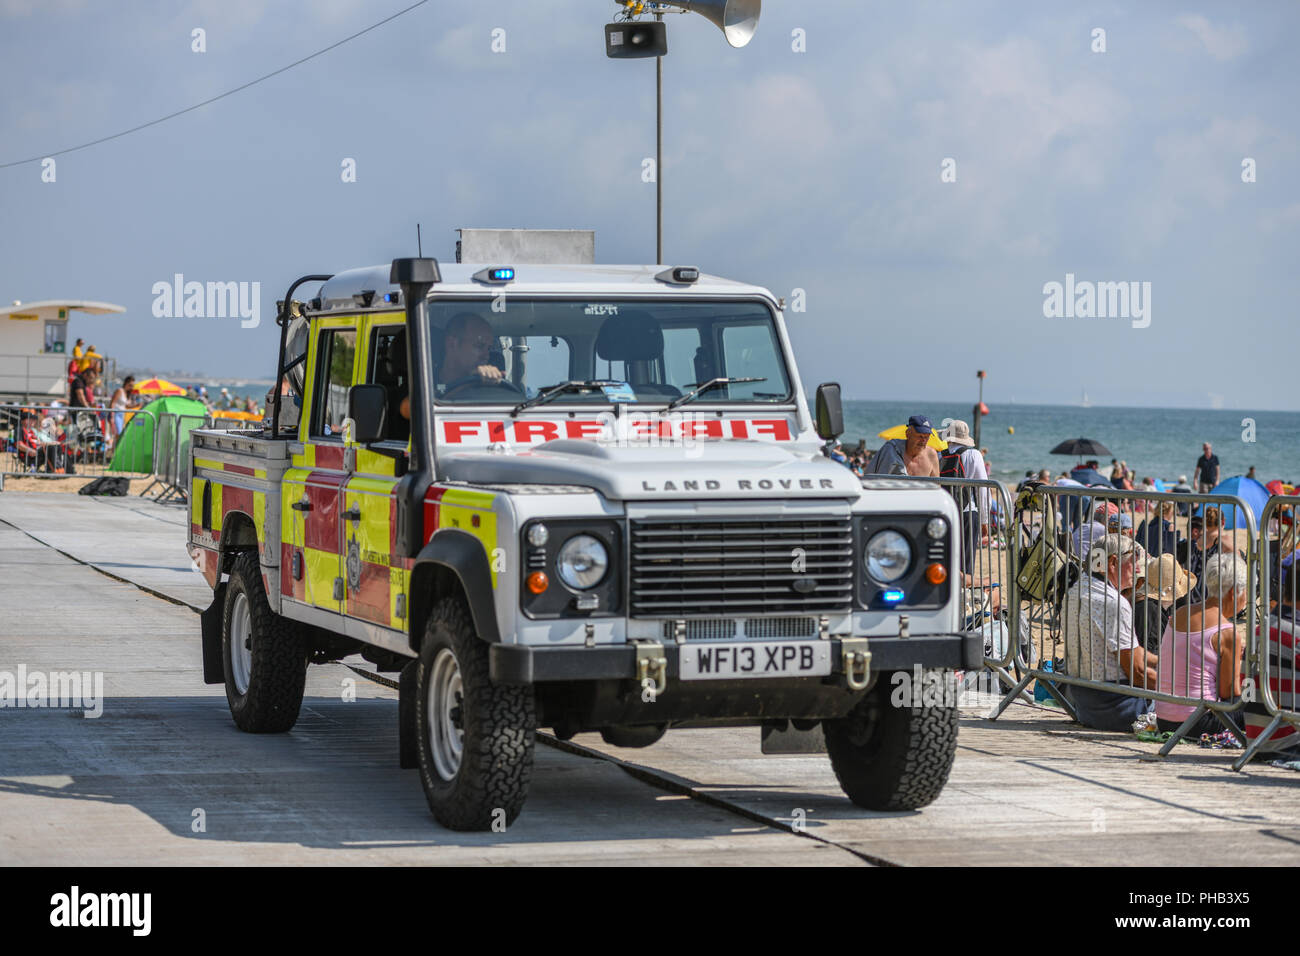 Bournemouth, UK. 31st August, 2018. Thousands of people enjoy the aerial displays at the Bournemouth Air Festival in Dorset. The free weekend festival goes on until the 2nd September 2018. Credit: Thomas Faull/Alamy Live News Stock Photo